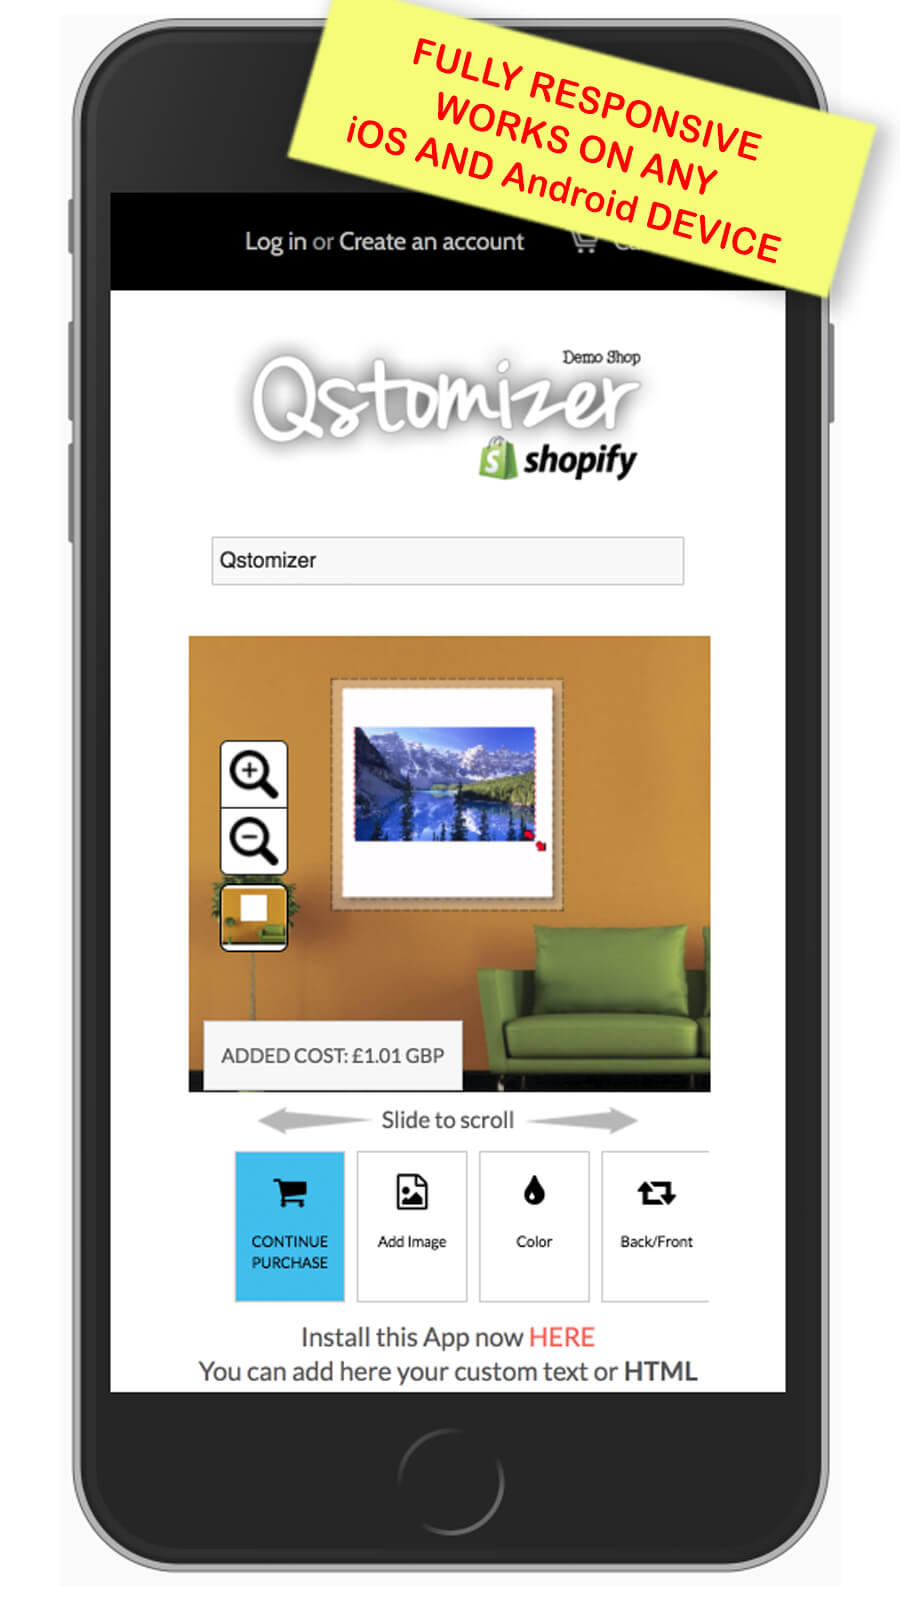 Qstomizer works on any smartphone